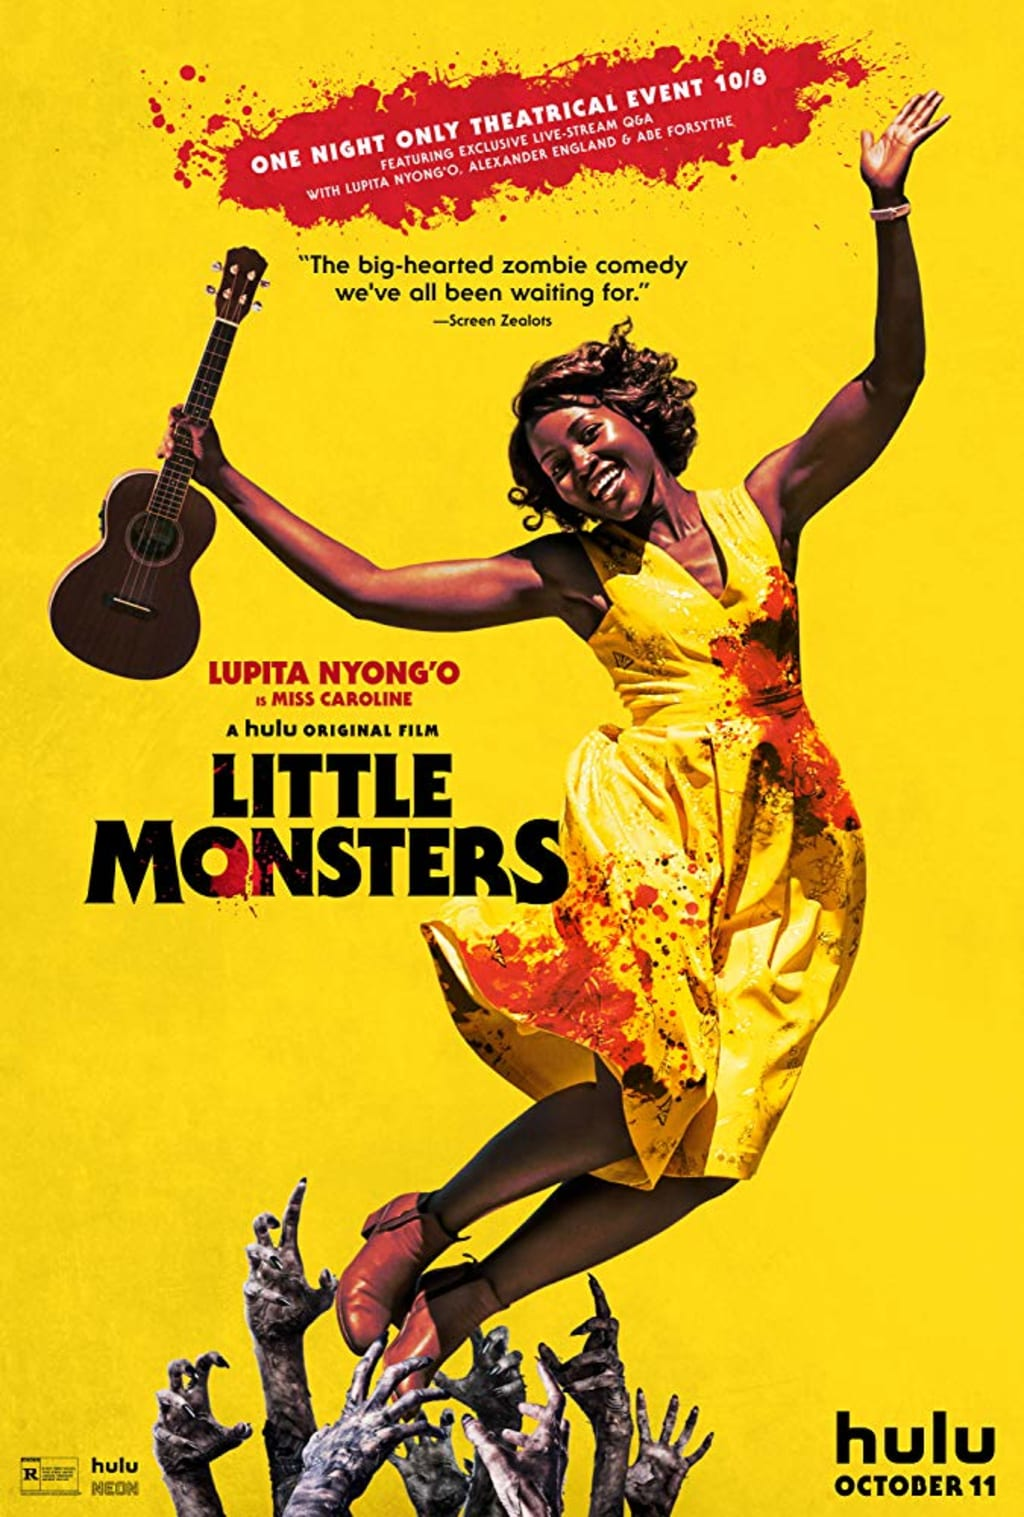 Reed Alexander's Horror Review of 'Little Monsters' (2019)